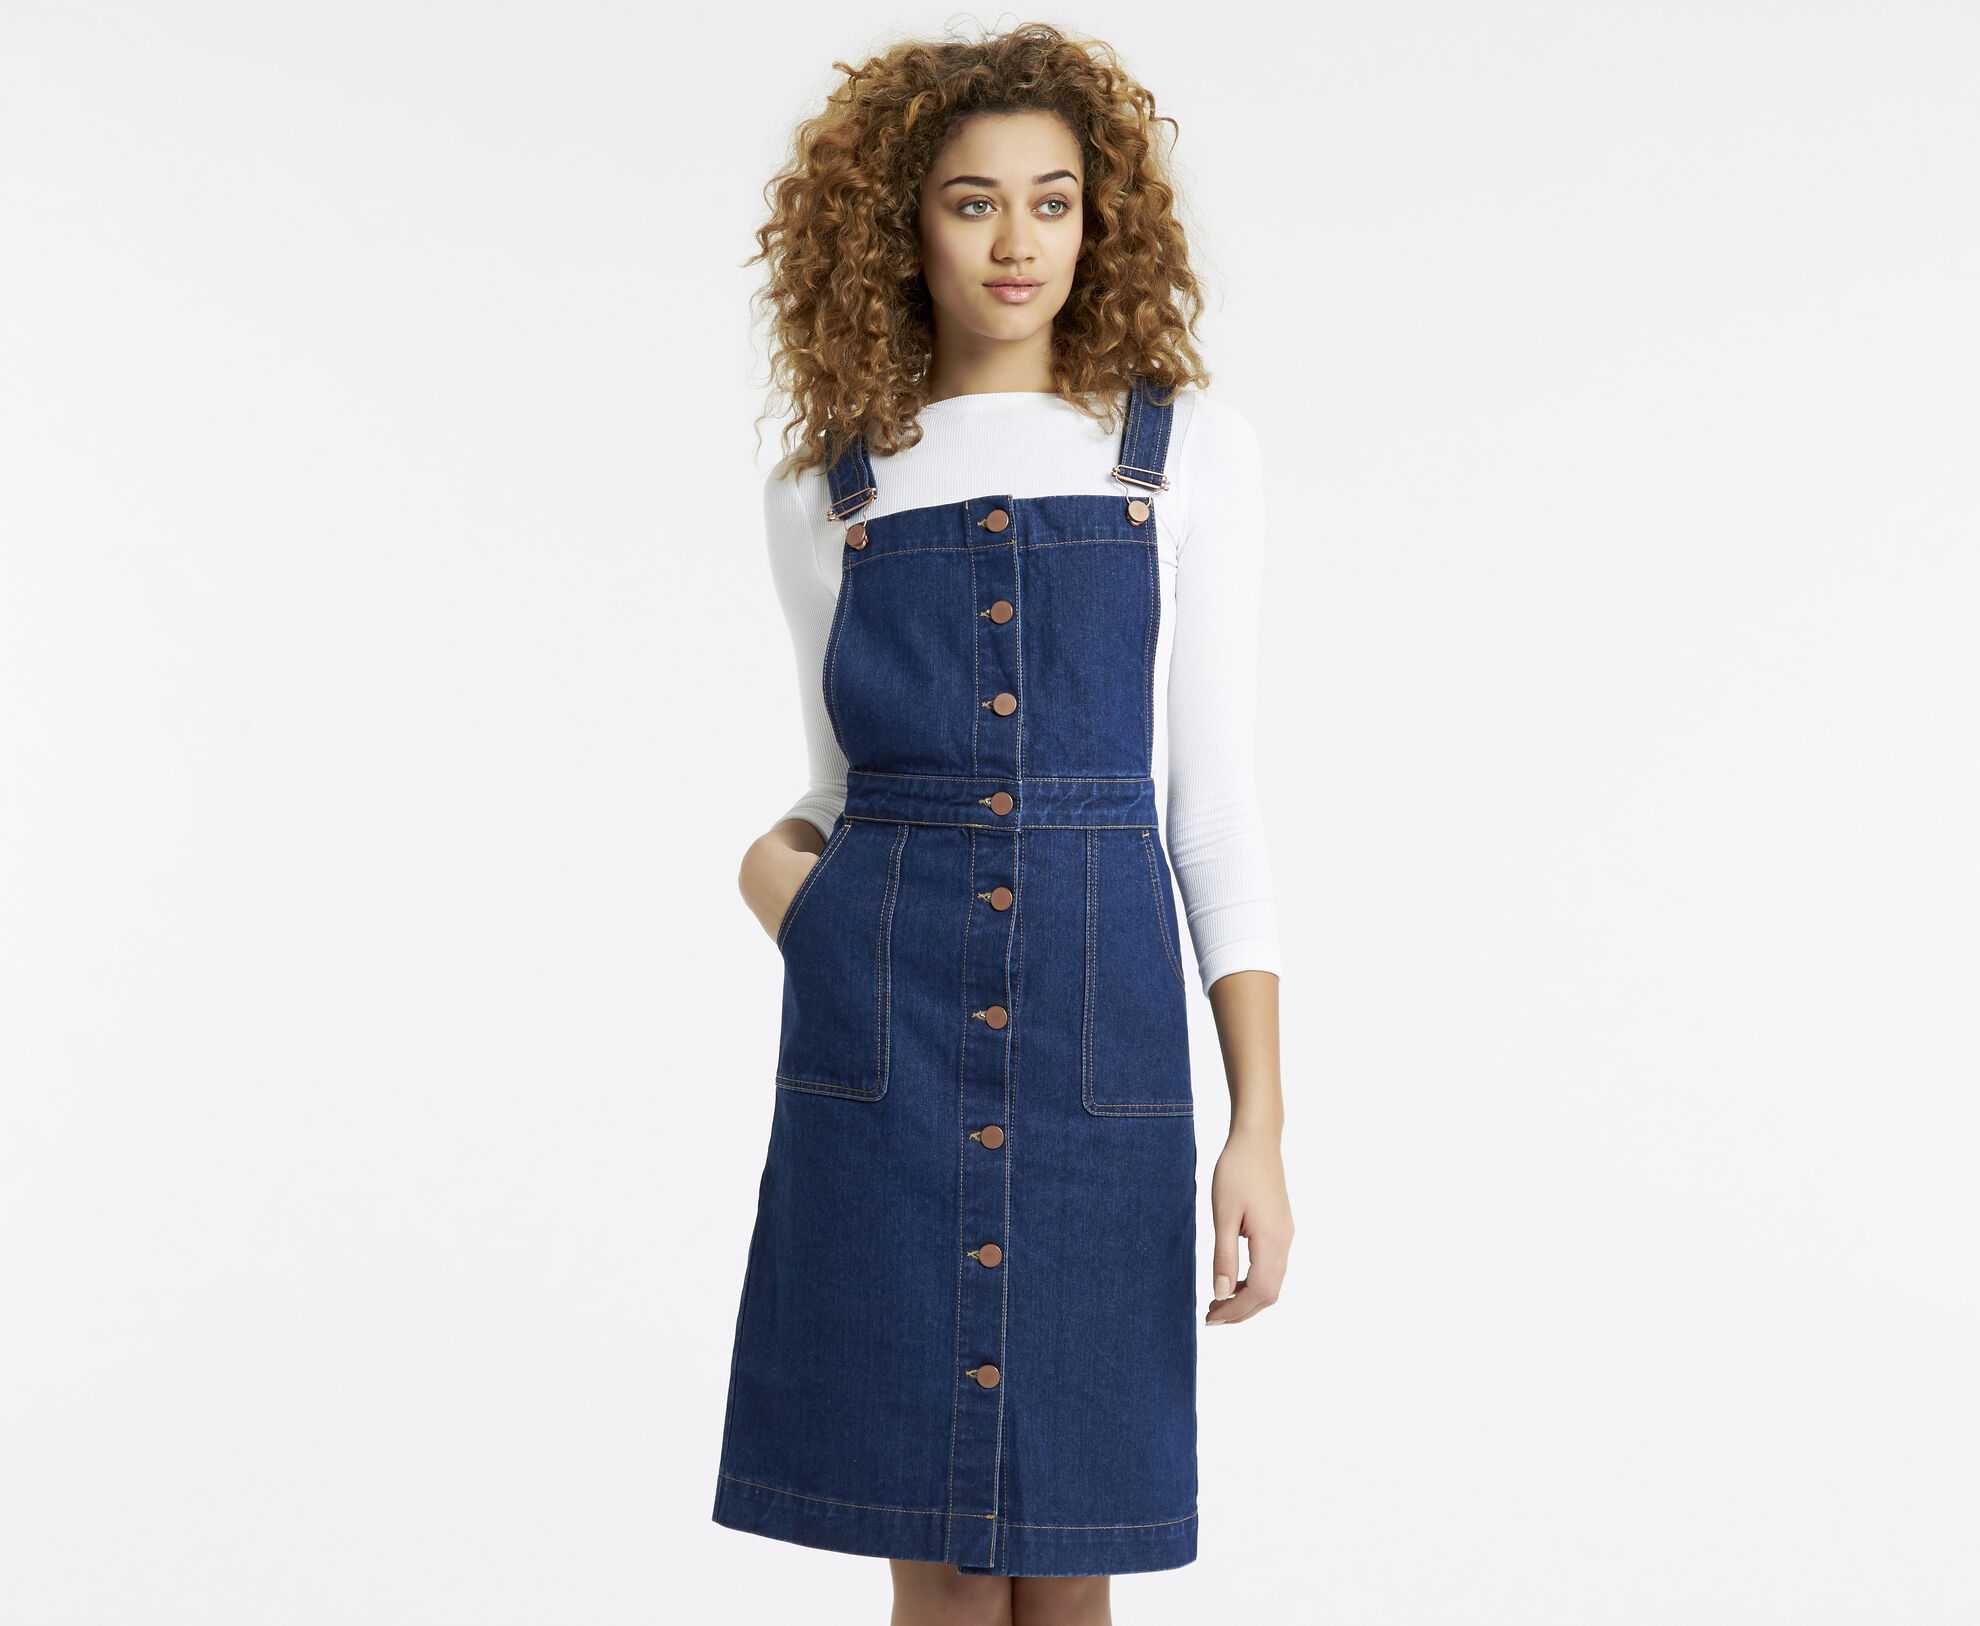 Simple Boohoo Womens India Denim Dungaree Pinafore Dress | EBay